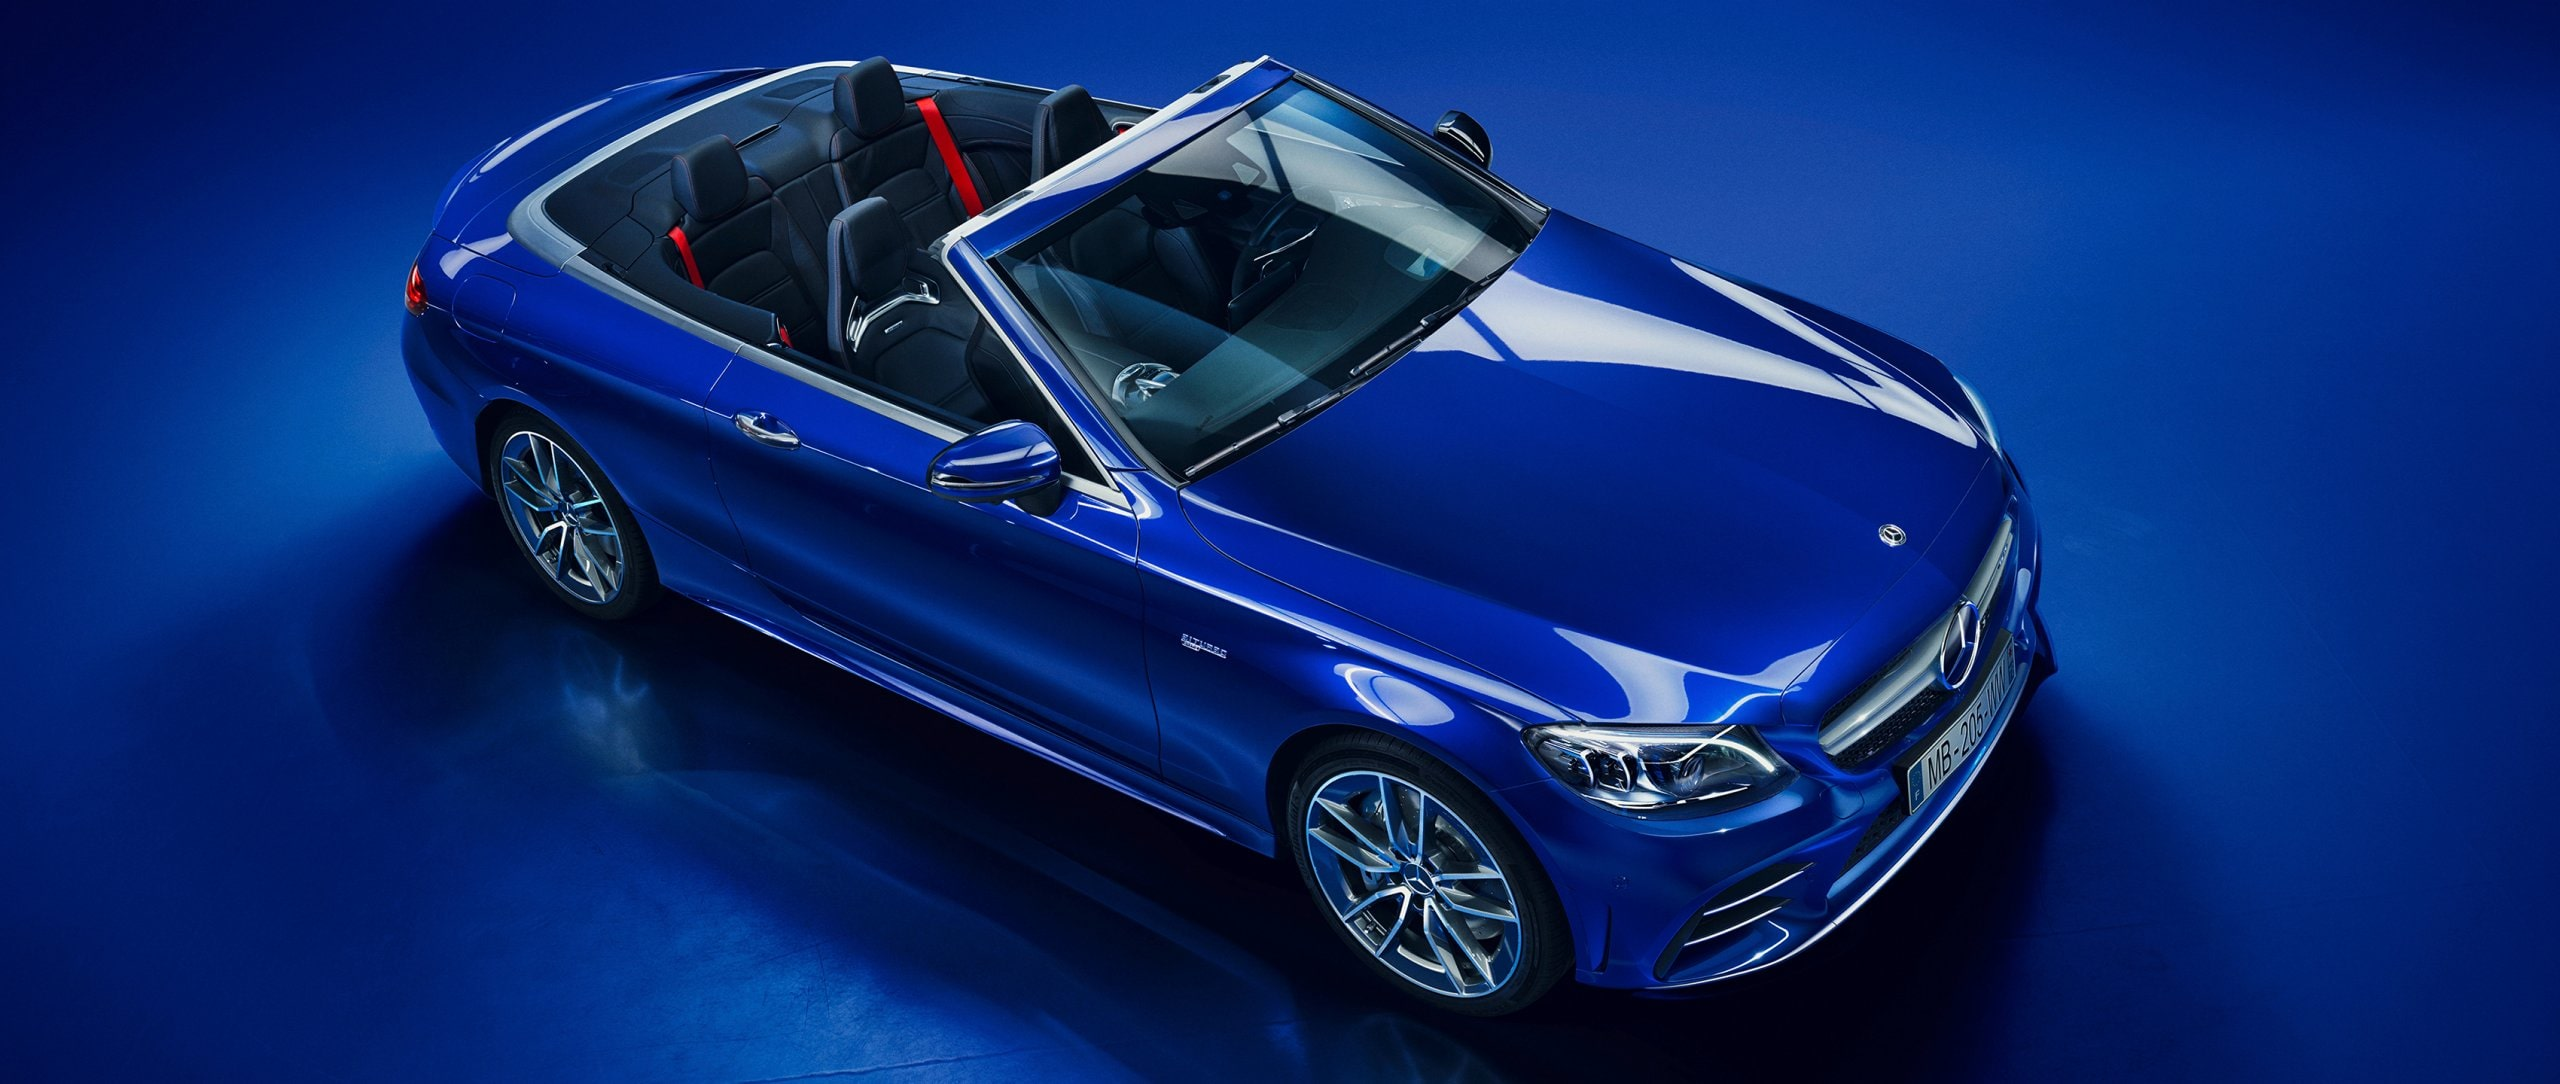 The Mercedes-AMG C 43 4MATIC Cabriolet in blue with blue background.